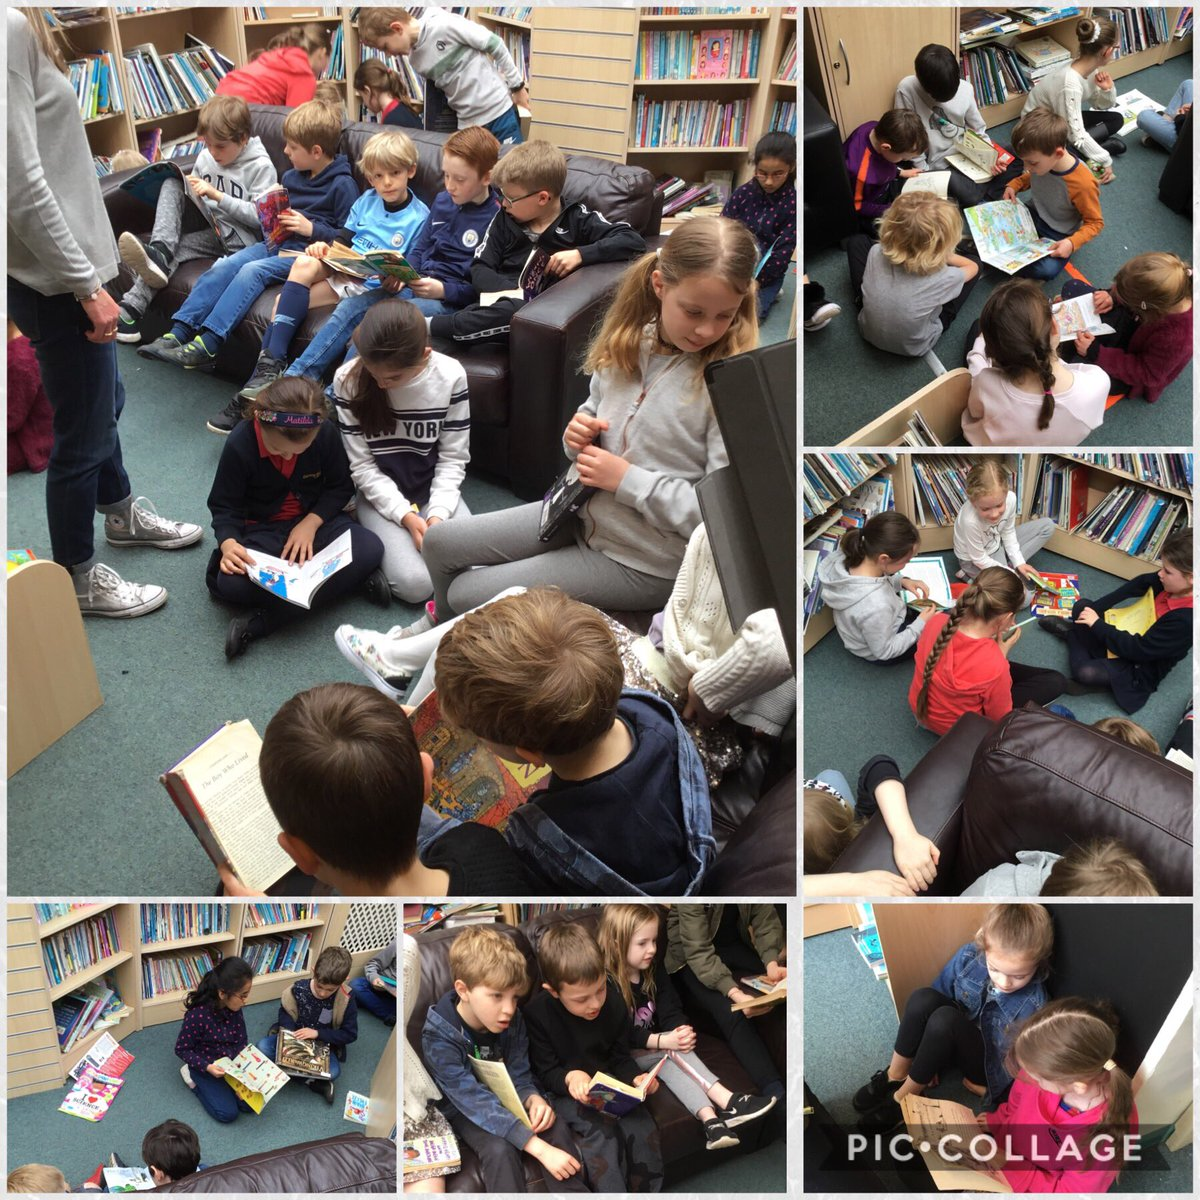 test Twitter Media - We bumped into @GorseyY4 in the library 📚We thought it would be a great opportunity to read to each other! What an awesome Friday 😎 #gorseyenglish #gorseybookclub https://t.co/vmy8wlQlFT